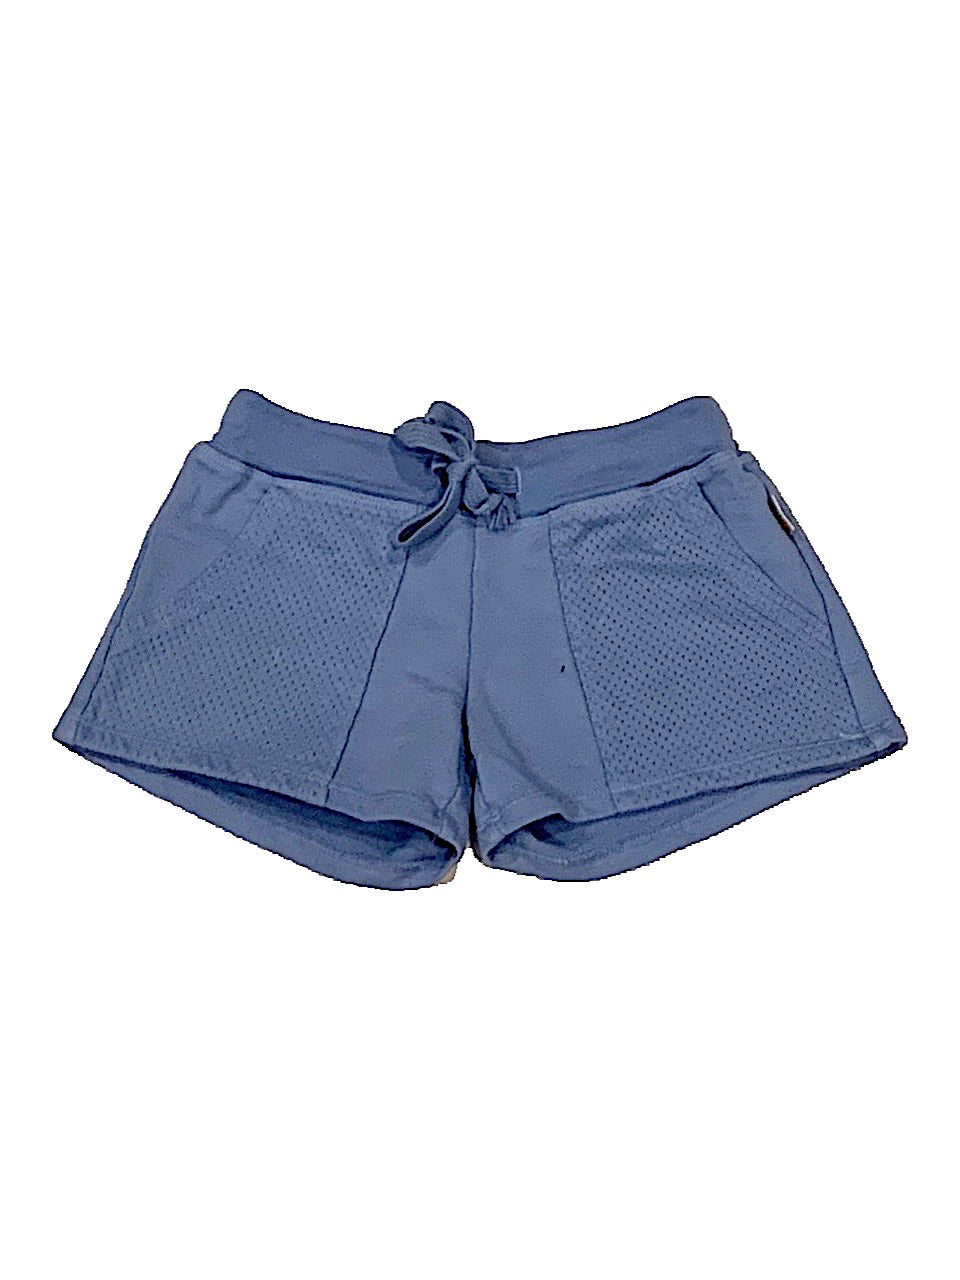 T2Love Blue Mesh Contrast Pocket Shorts